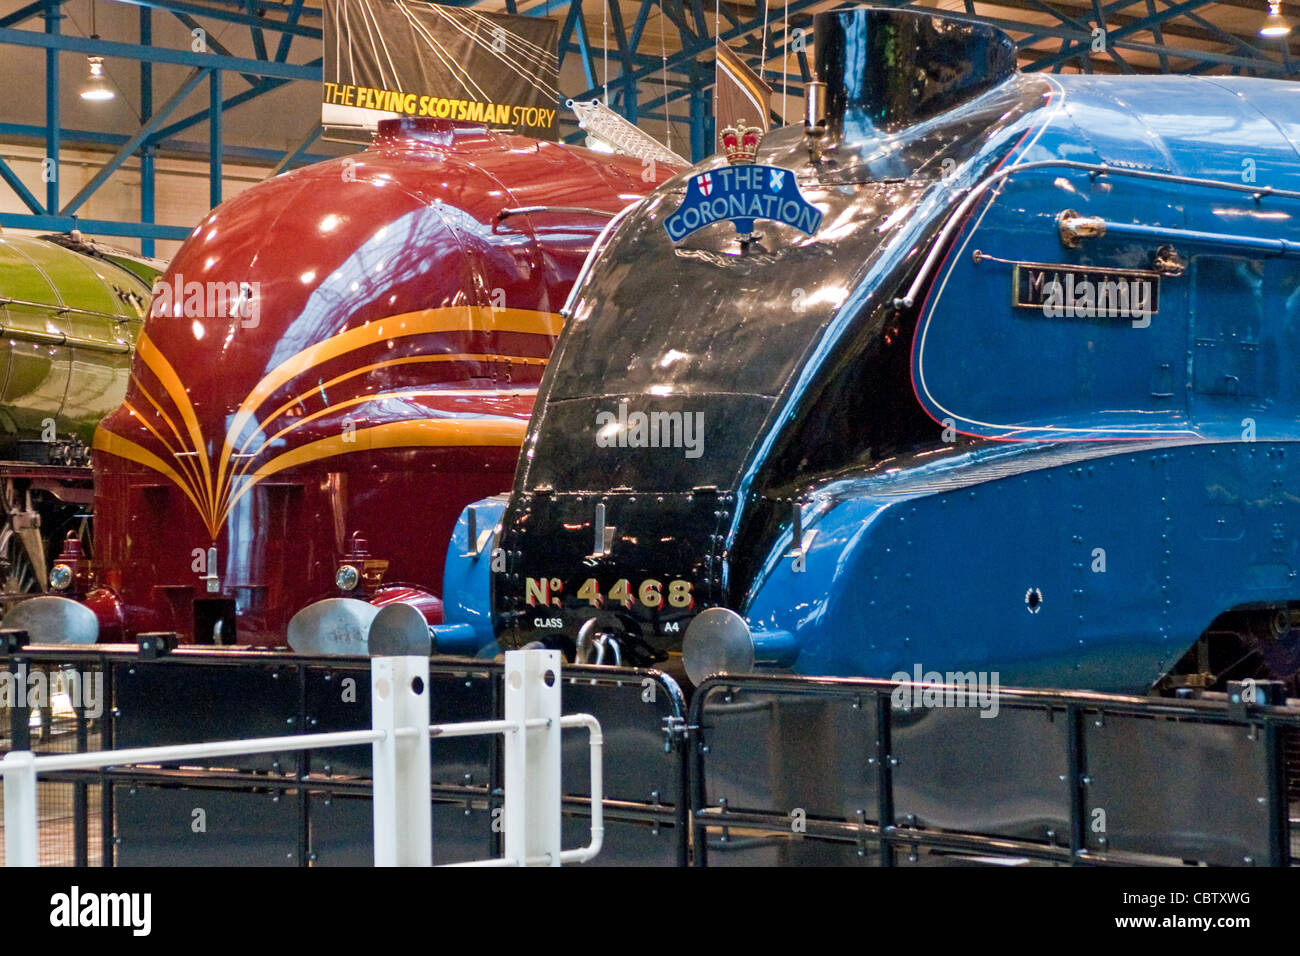 The iconic steam locomotives Duchess of Hamilton and world record holder Mallard displayed in the National Railway - Stock Image